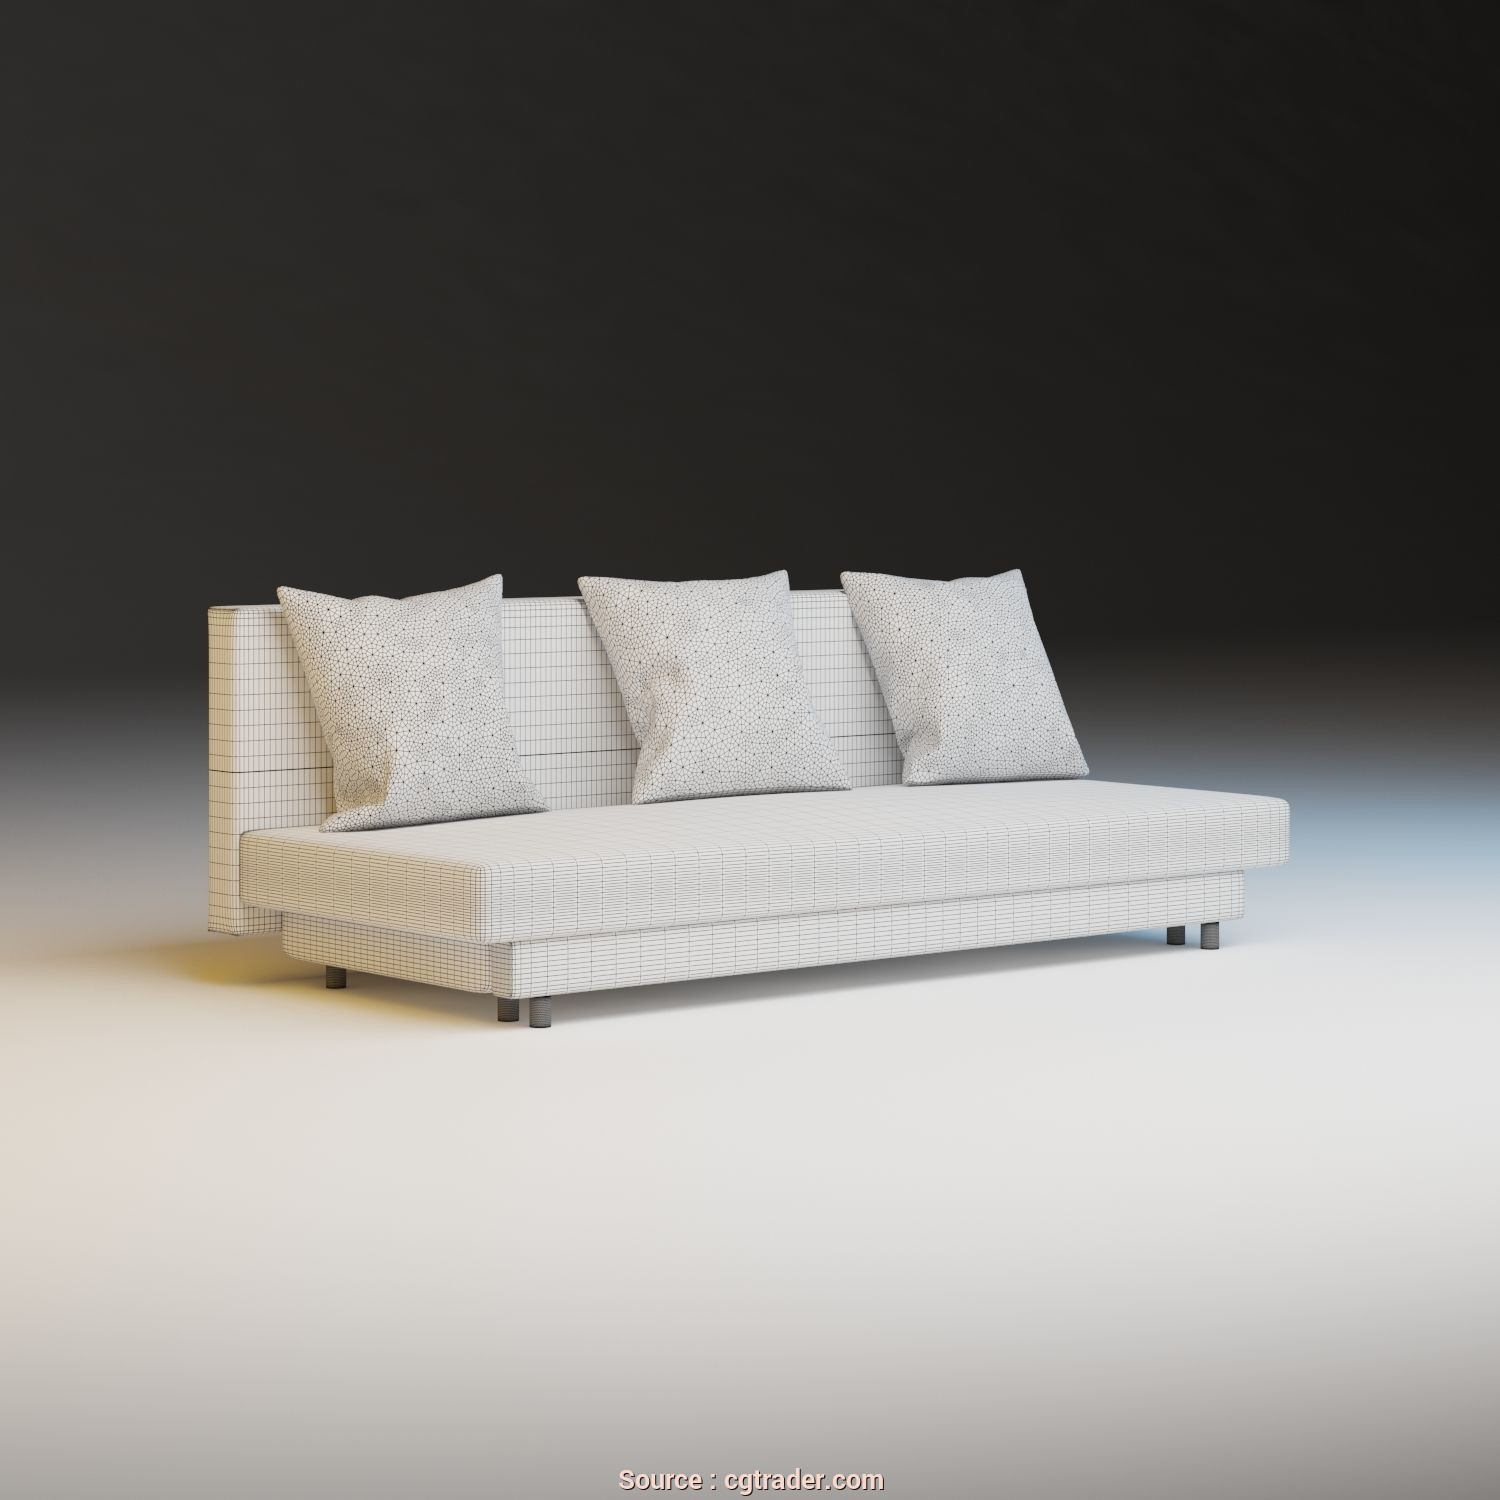 Ikea Asarum Sofa Review, Eccezionale ... Ikea, Asarum Sofa 3D Model, Obj, 3Ds, 2